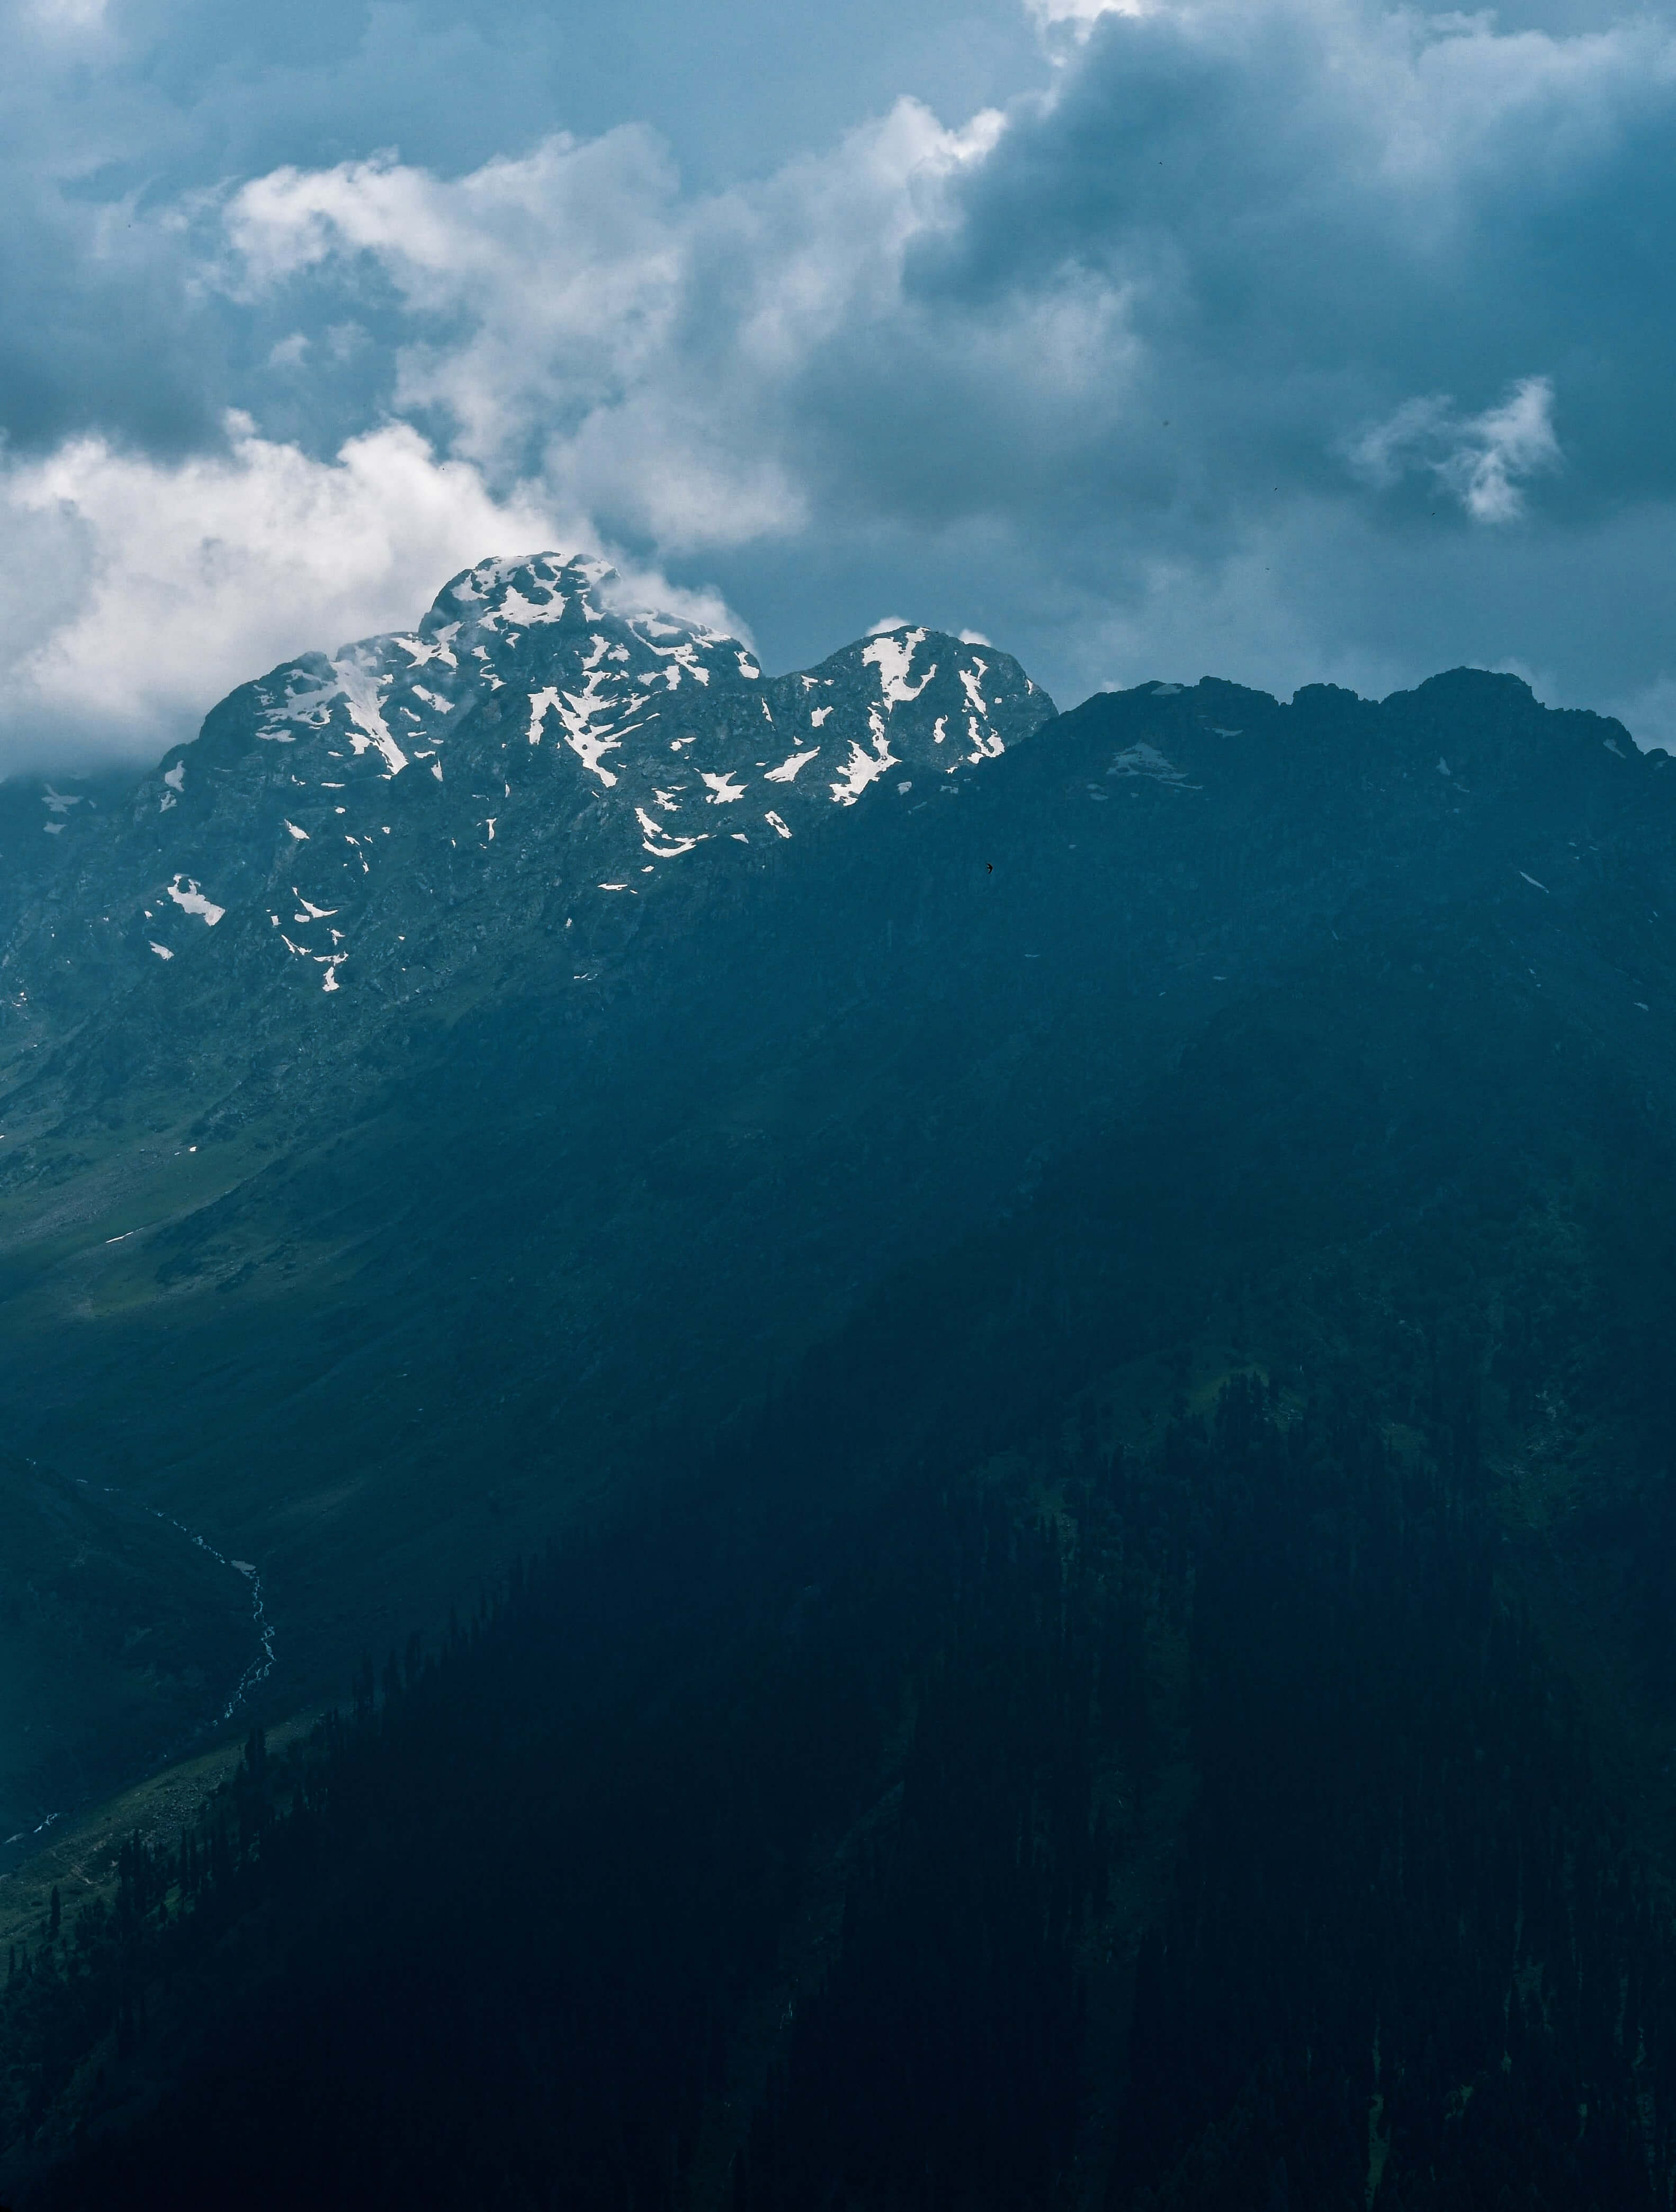 Trekking in Kashmir and snowy mountains